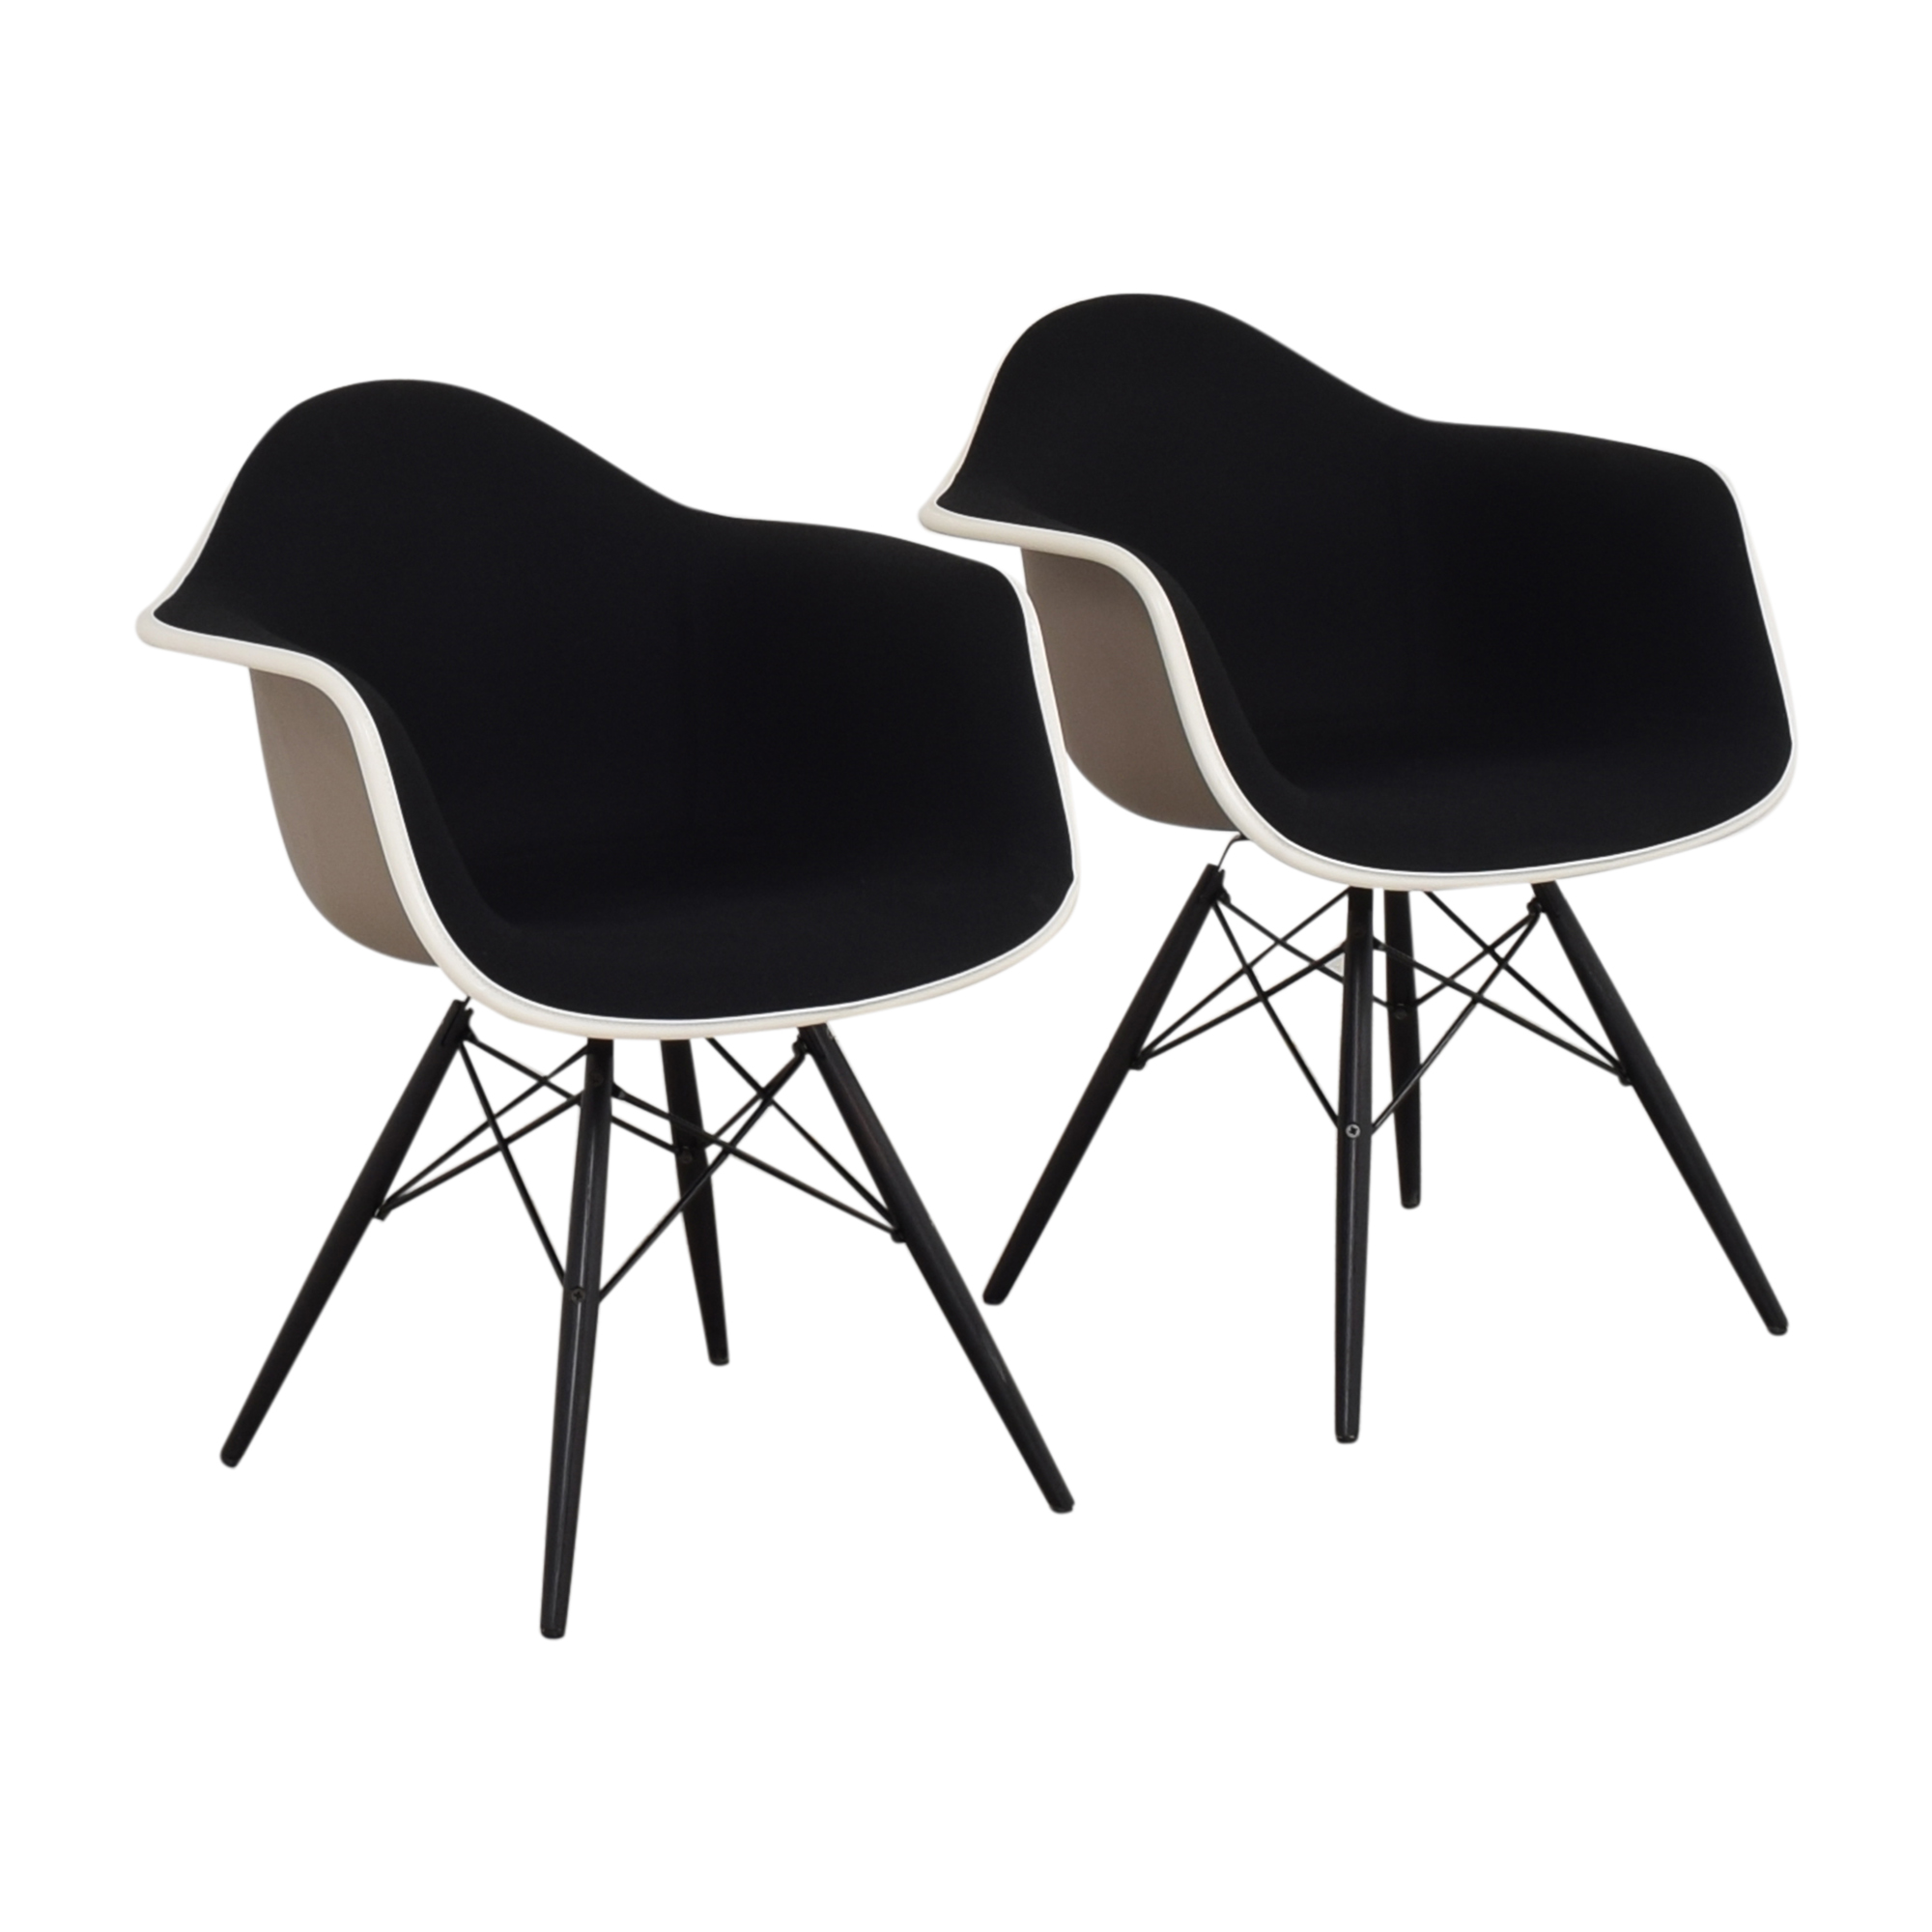 Herman Miller Herman Miller Eames Molded Arm Chairs Accent Chairs